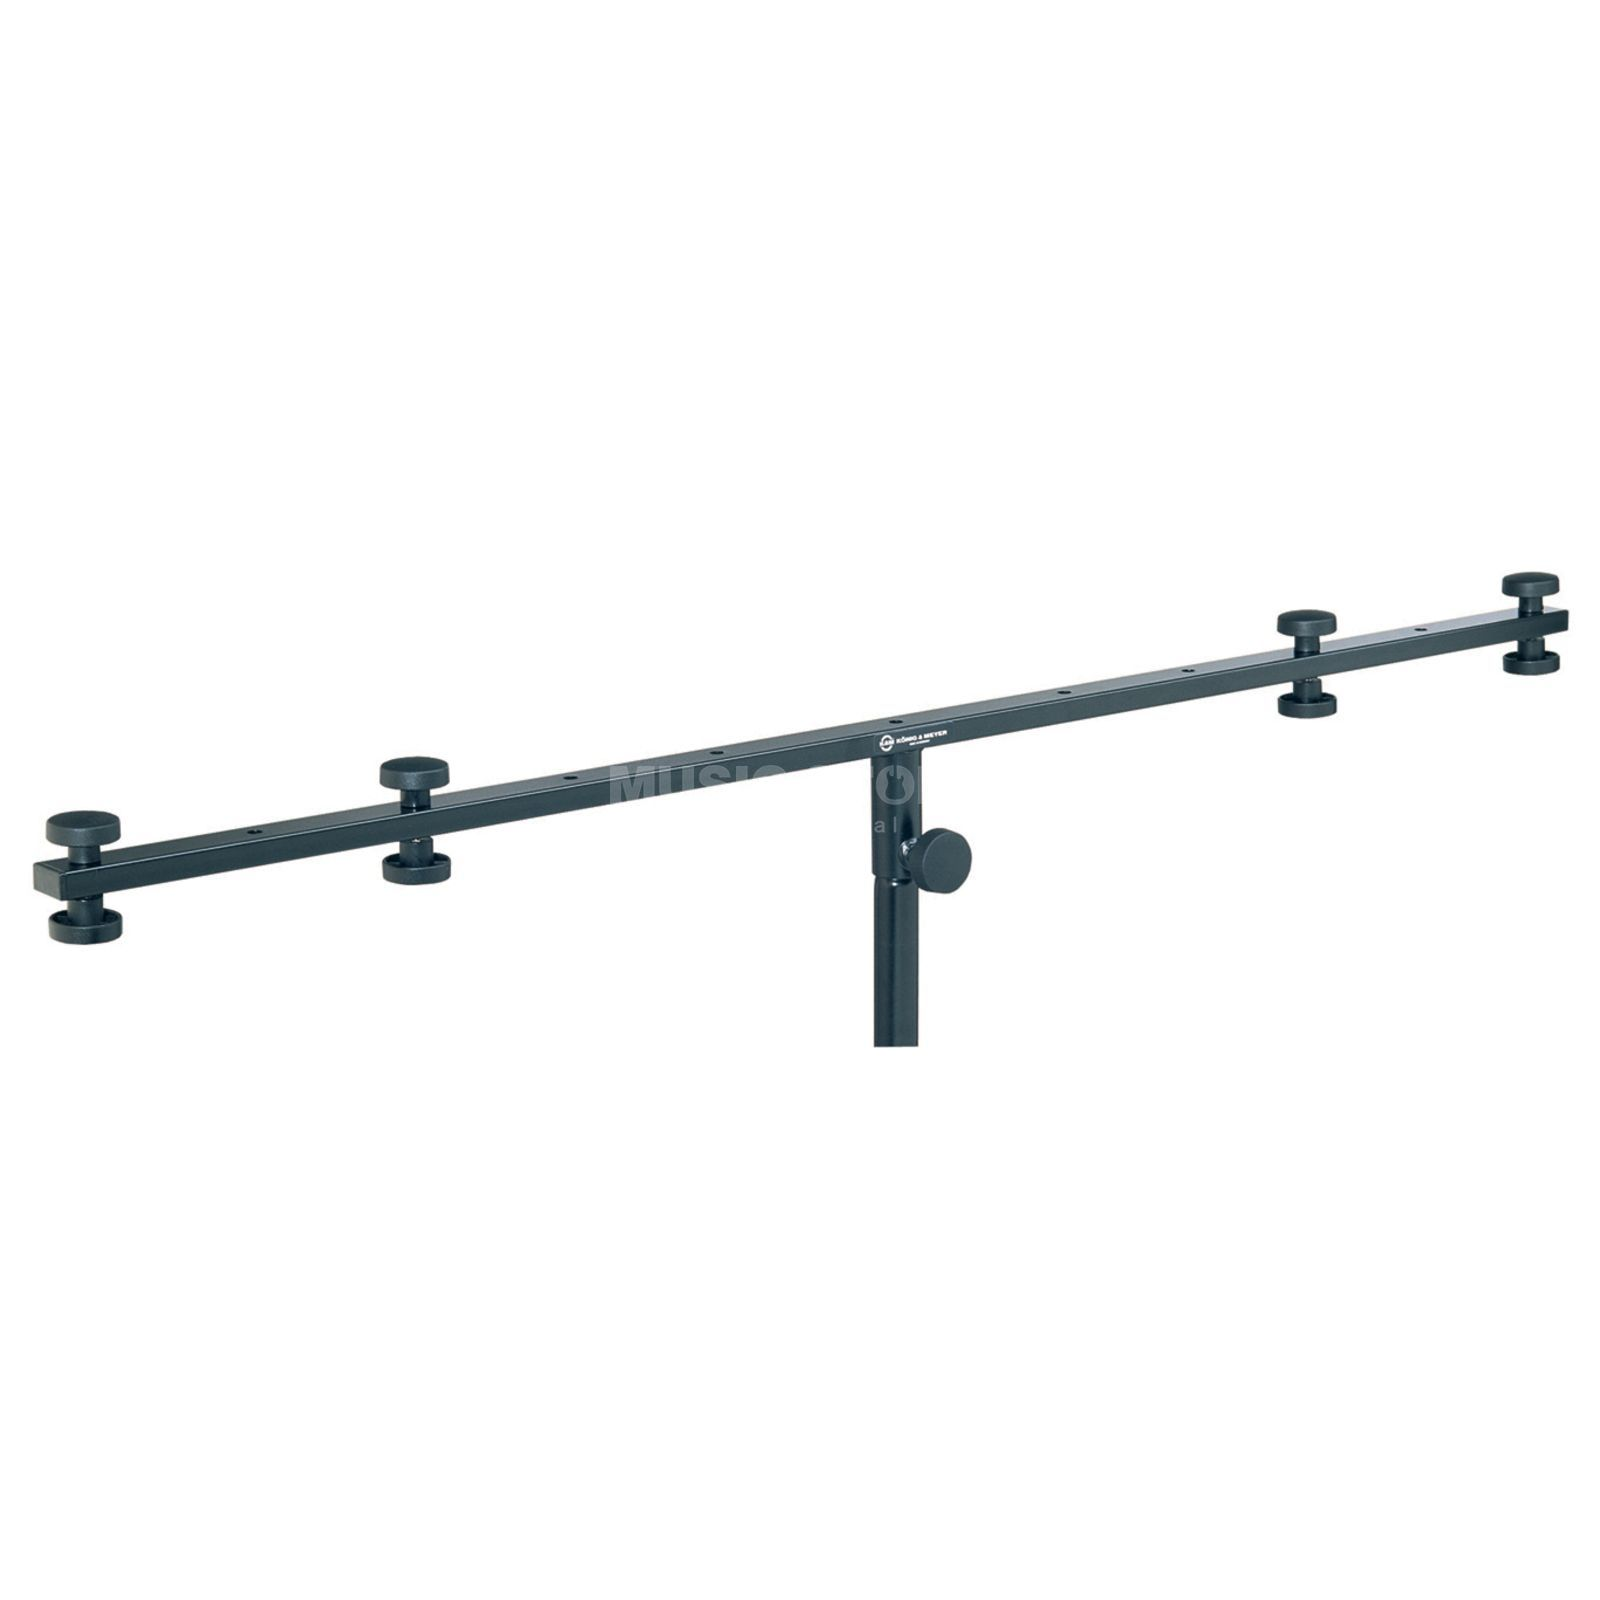 König & Meyer 21393 Traverse for Light/Speaker Stands Produktbillede